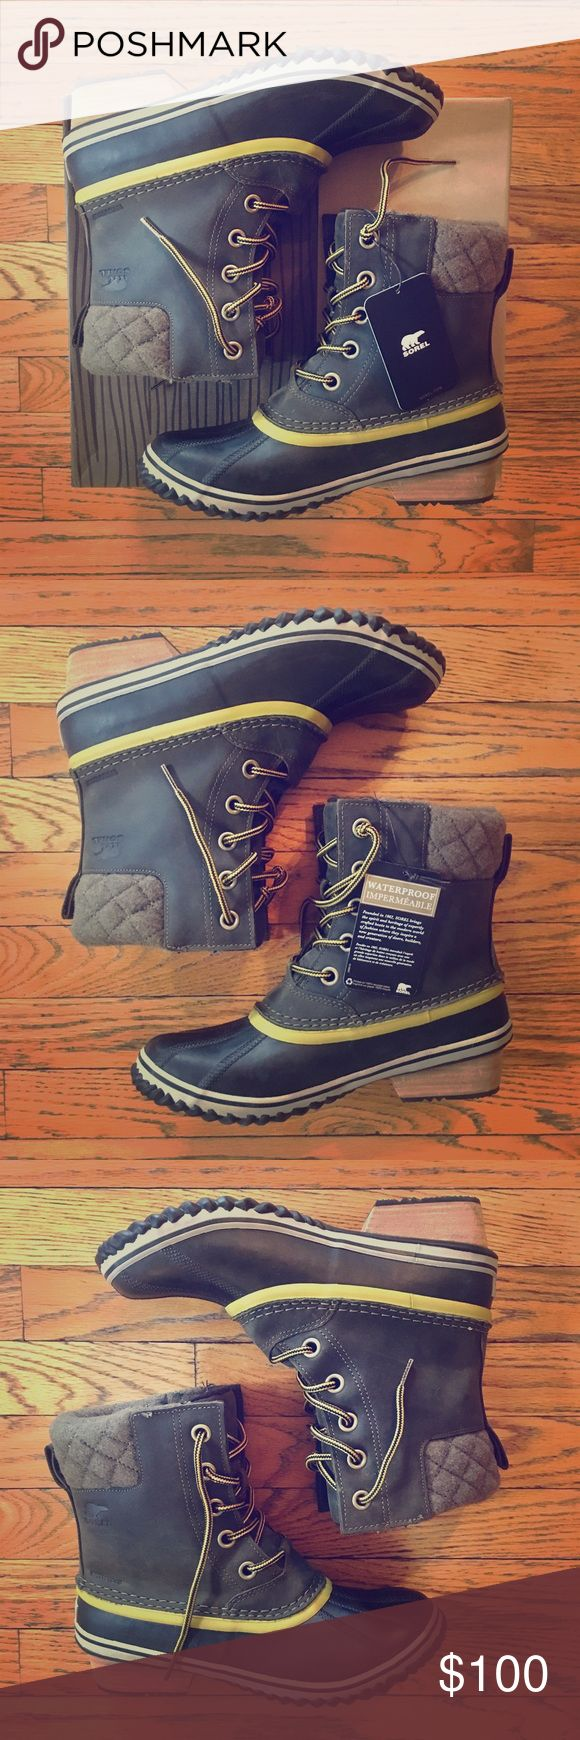 Women's Slimpack II Lace Duck Boot These Sorel duck boots make the ultimate statement on those dreary winter days. NEVER BEEN WORN with box and tag still attached. Size 9.5. Peatmoss, bog color. Sorel Shoes Winter & Rain Boots